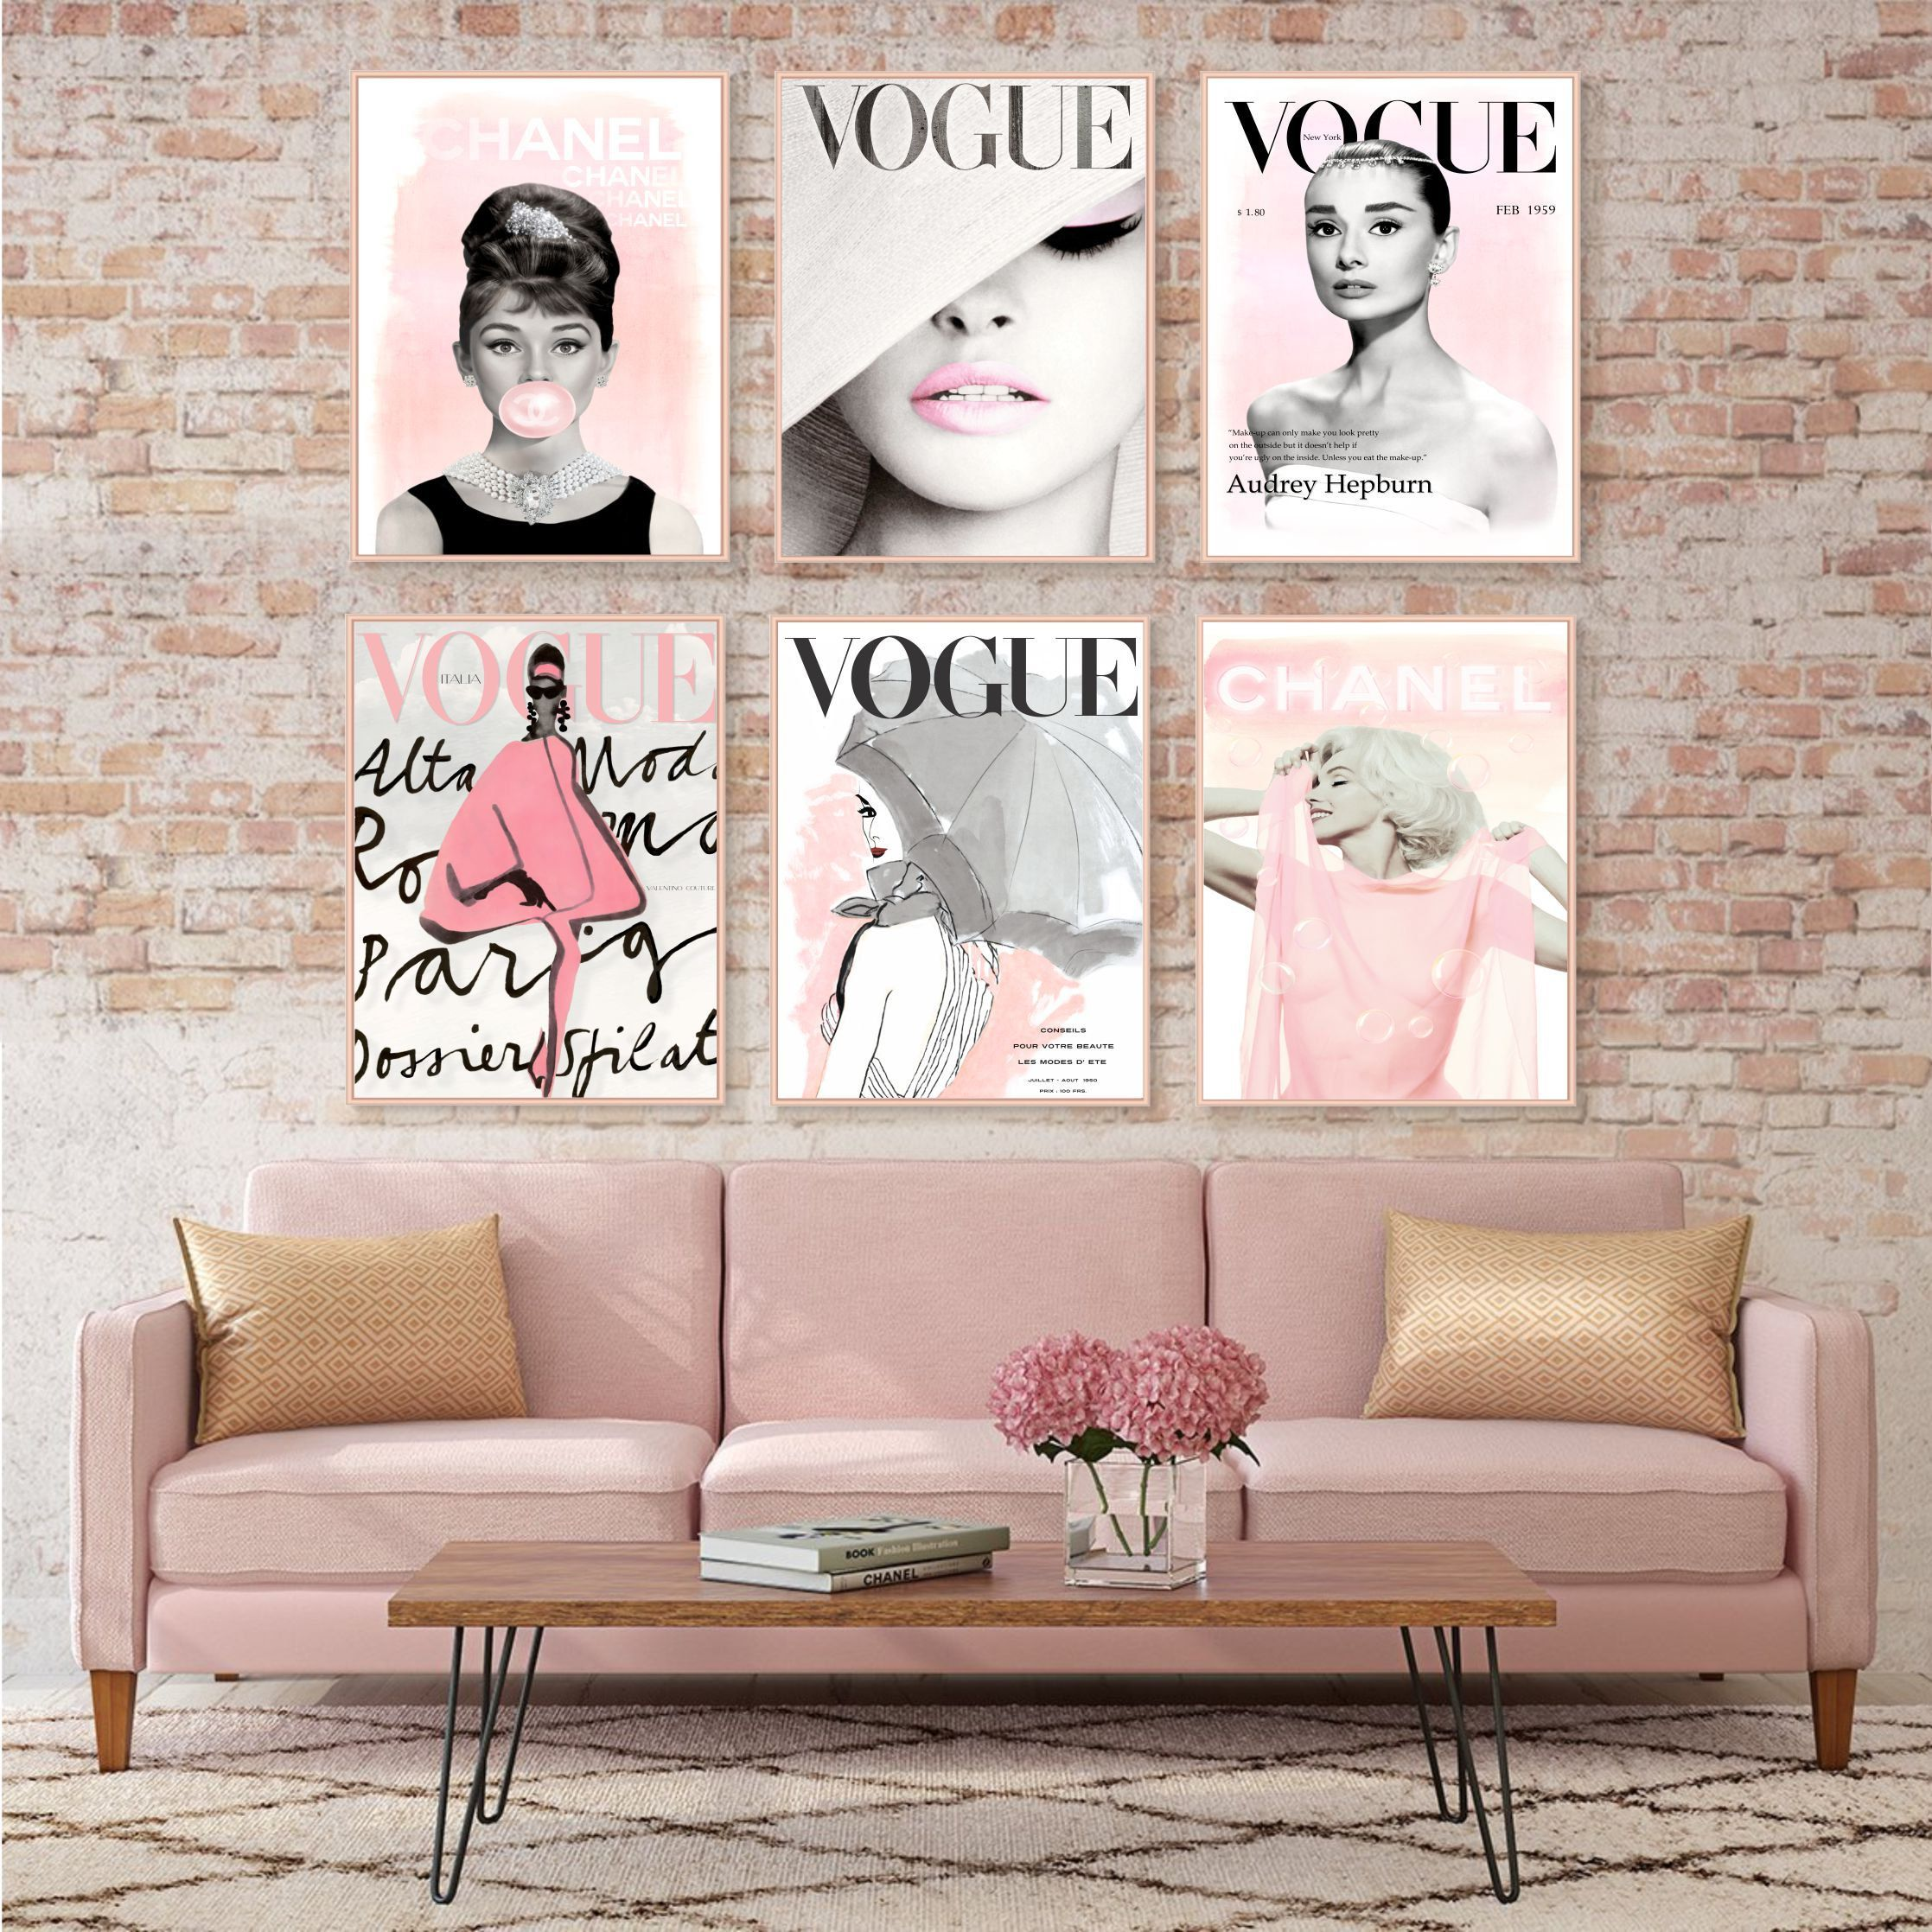 Fashion Wall Art Set Prints Vogue Posters Chanel Prints Set Of 6 Fashion Prints Water Fashion Wall Art Salon Interior Design Nail Salon Interior Design